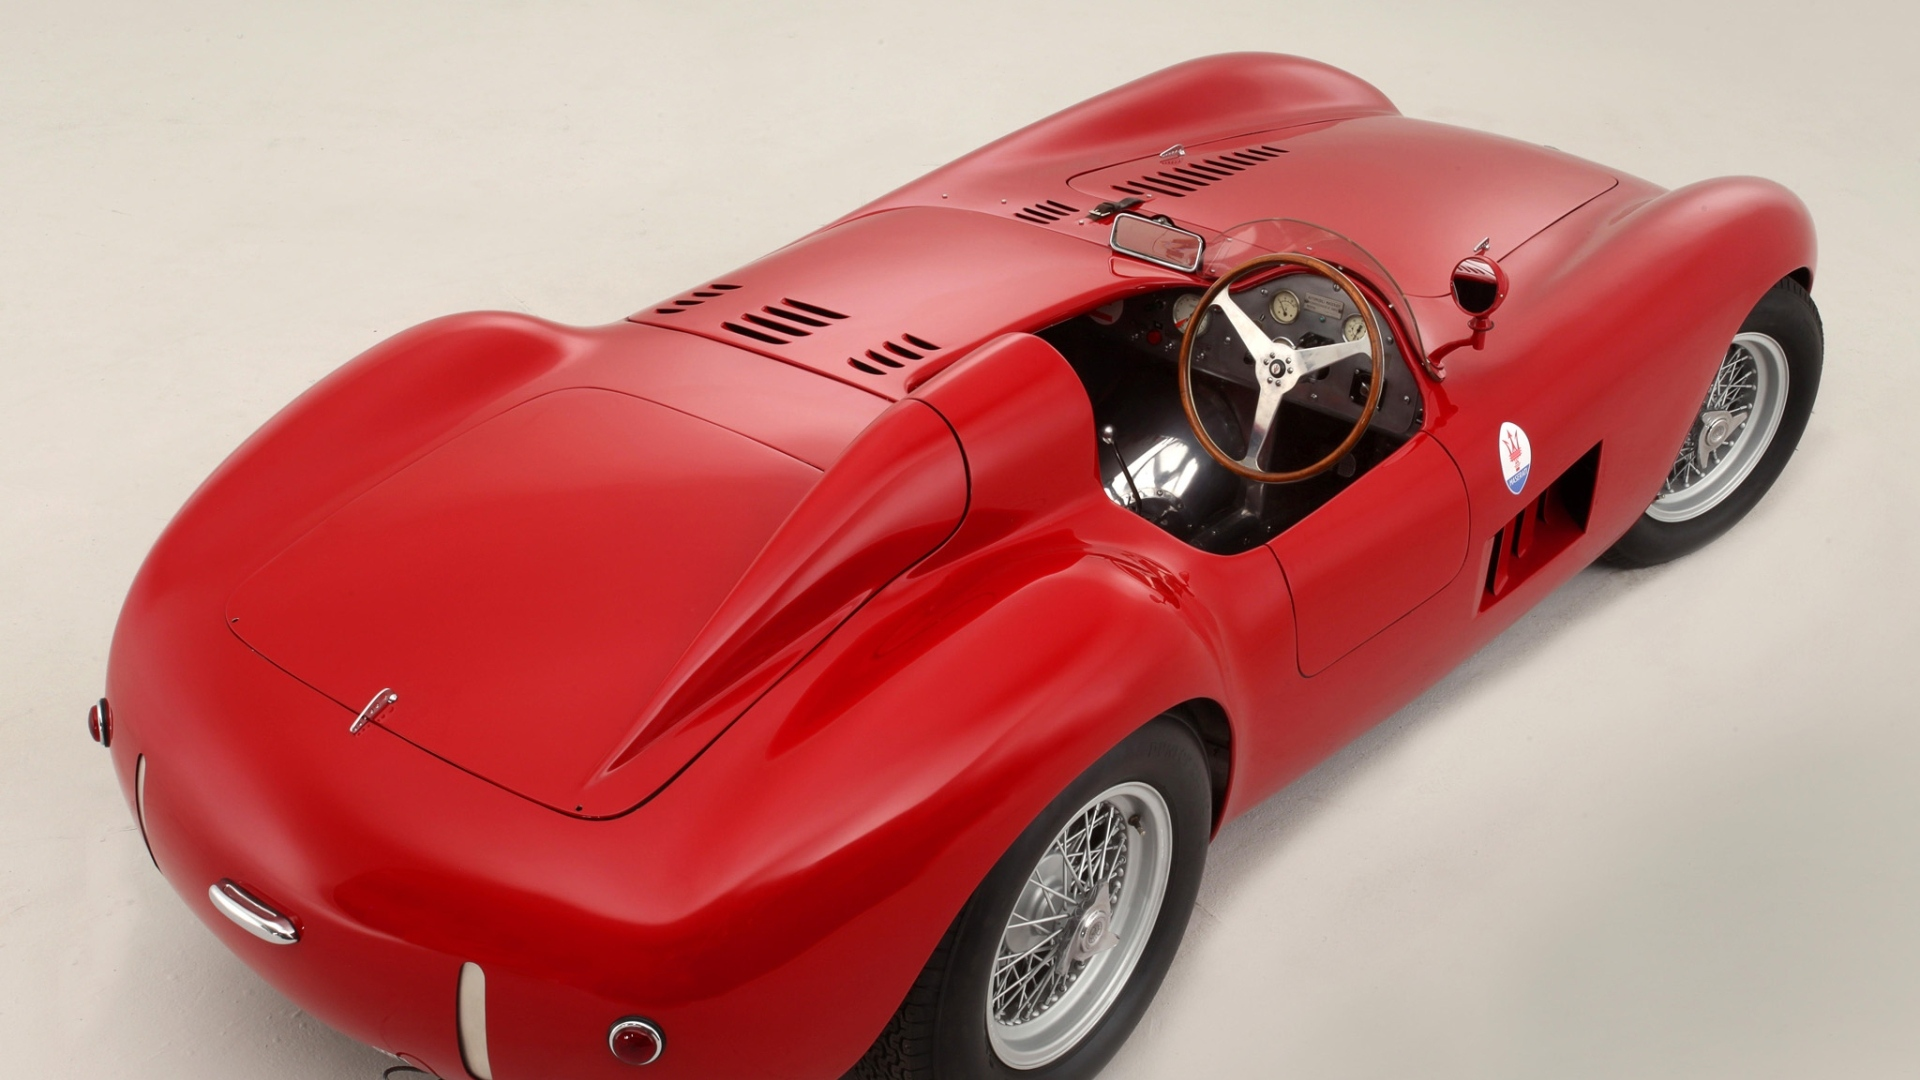 Maserati Vintage Old Red Hd Cars 4k Wallpapers Images Backgrounds Photos And Pictures